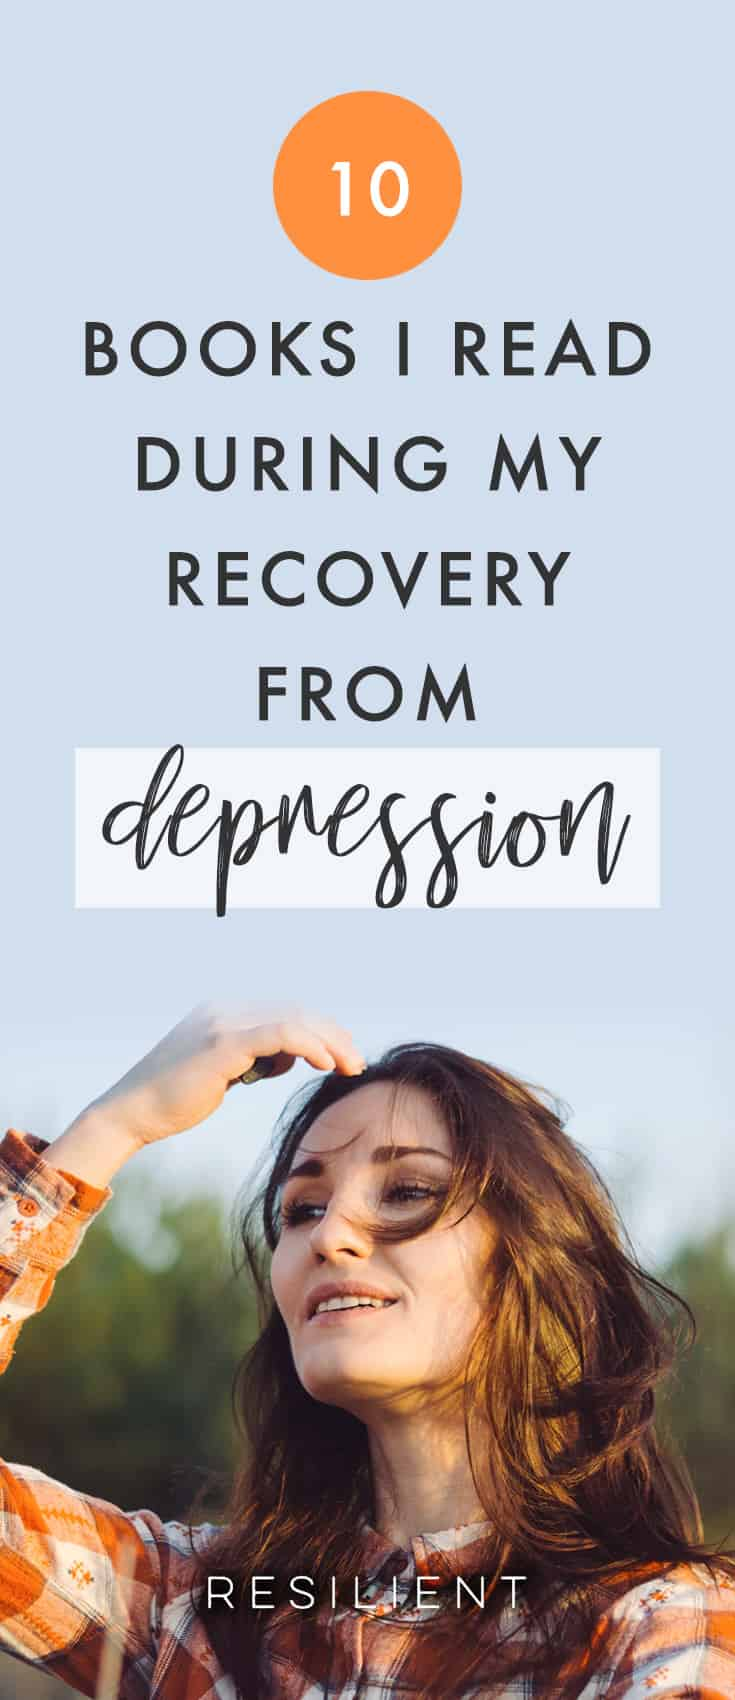 I was reading through old notes on Evernote the other day and I stumbled across a list of books I read during my recovery from depression.  By that I mean the time after coming home when I had nothing better to do with my time than actually get better, so that's what I did.  Here are 10 books I read during my recovery that I found to be helpful (there were more books, but I only included my favorites :)).